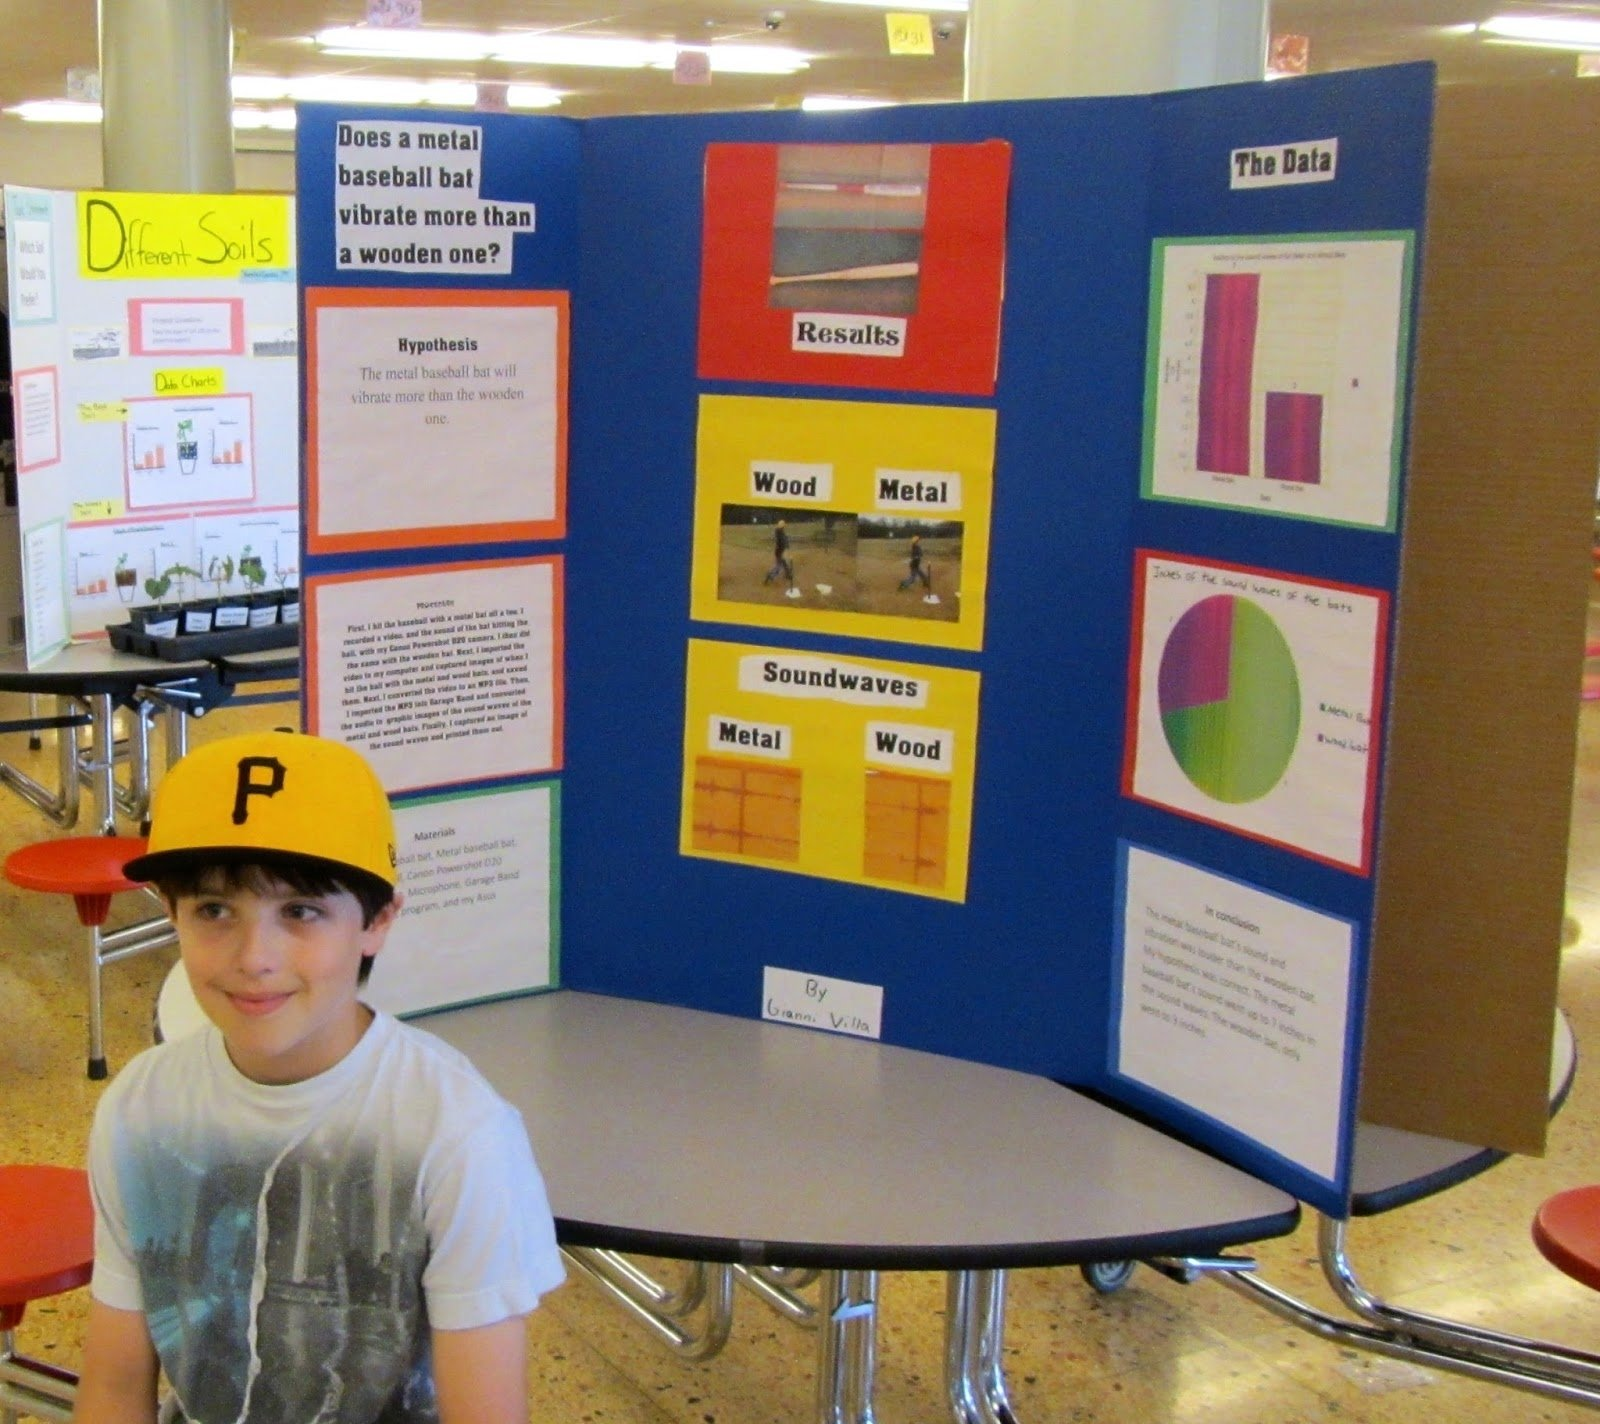 10 Attractive Science Fair Project Ideas For 8Th Grade List list of science projects college paper help txhomeworkzghp dedup 2020